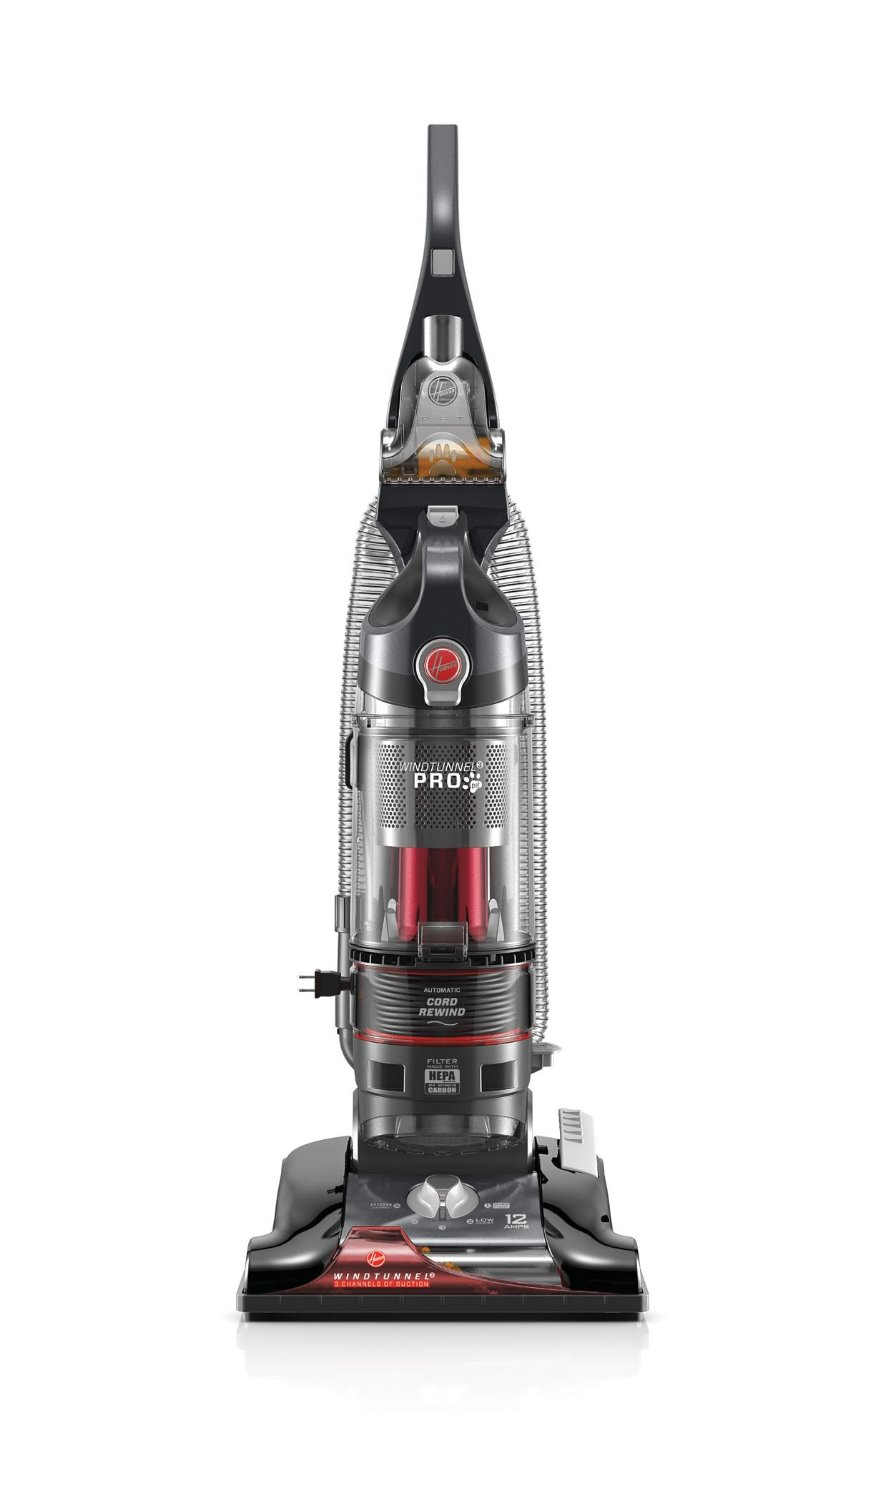 hoover vacuum cleaner windtunnel 3 pro pet bagless corded upright vacuum uh70931pc - Top 5 Vacuum Cleaners